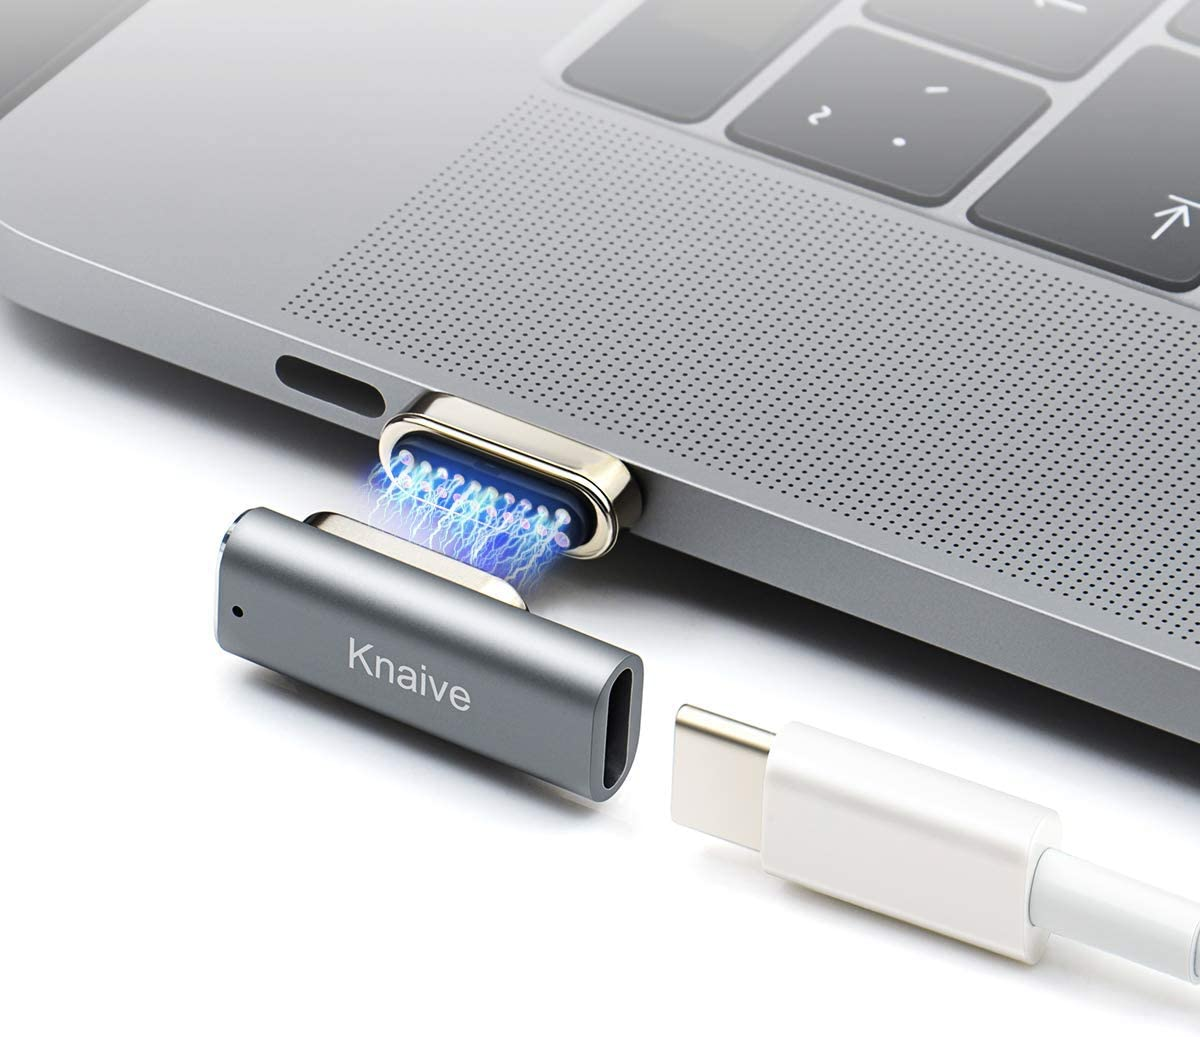 Knaive KD3 Compatible with MacBook Pro USB C Magnetic Adapter 20Pins Magnetic to USB C 3.1 Converter Adapter,Support 100W PD,10Gbp/s Data,4K Video for More Type-c Device